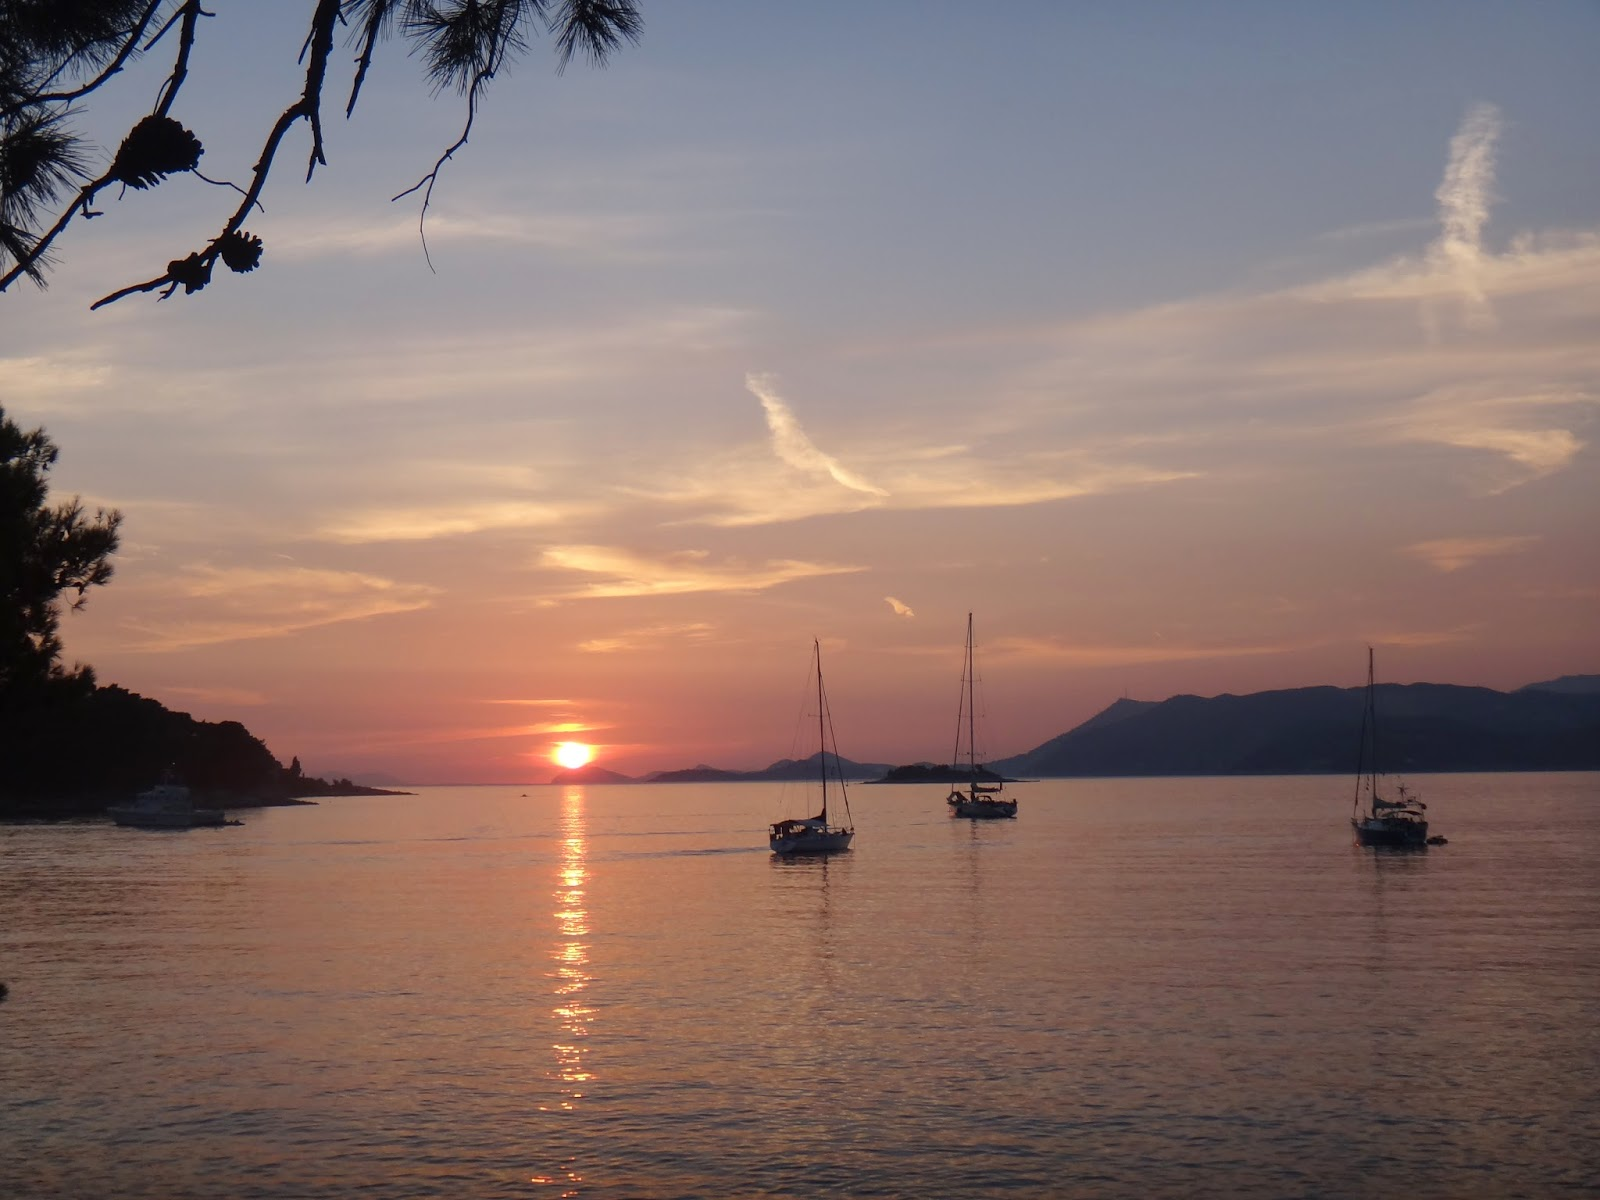 Sunset, Cavtat, Croatia